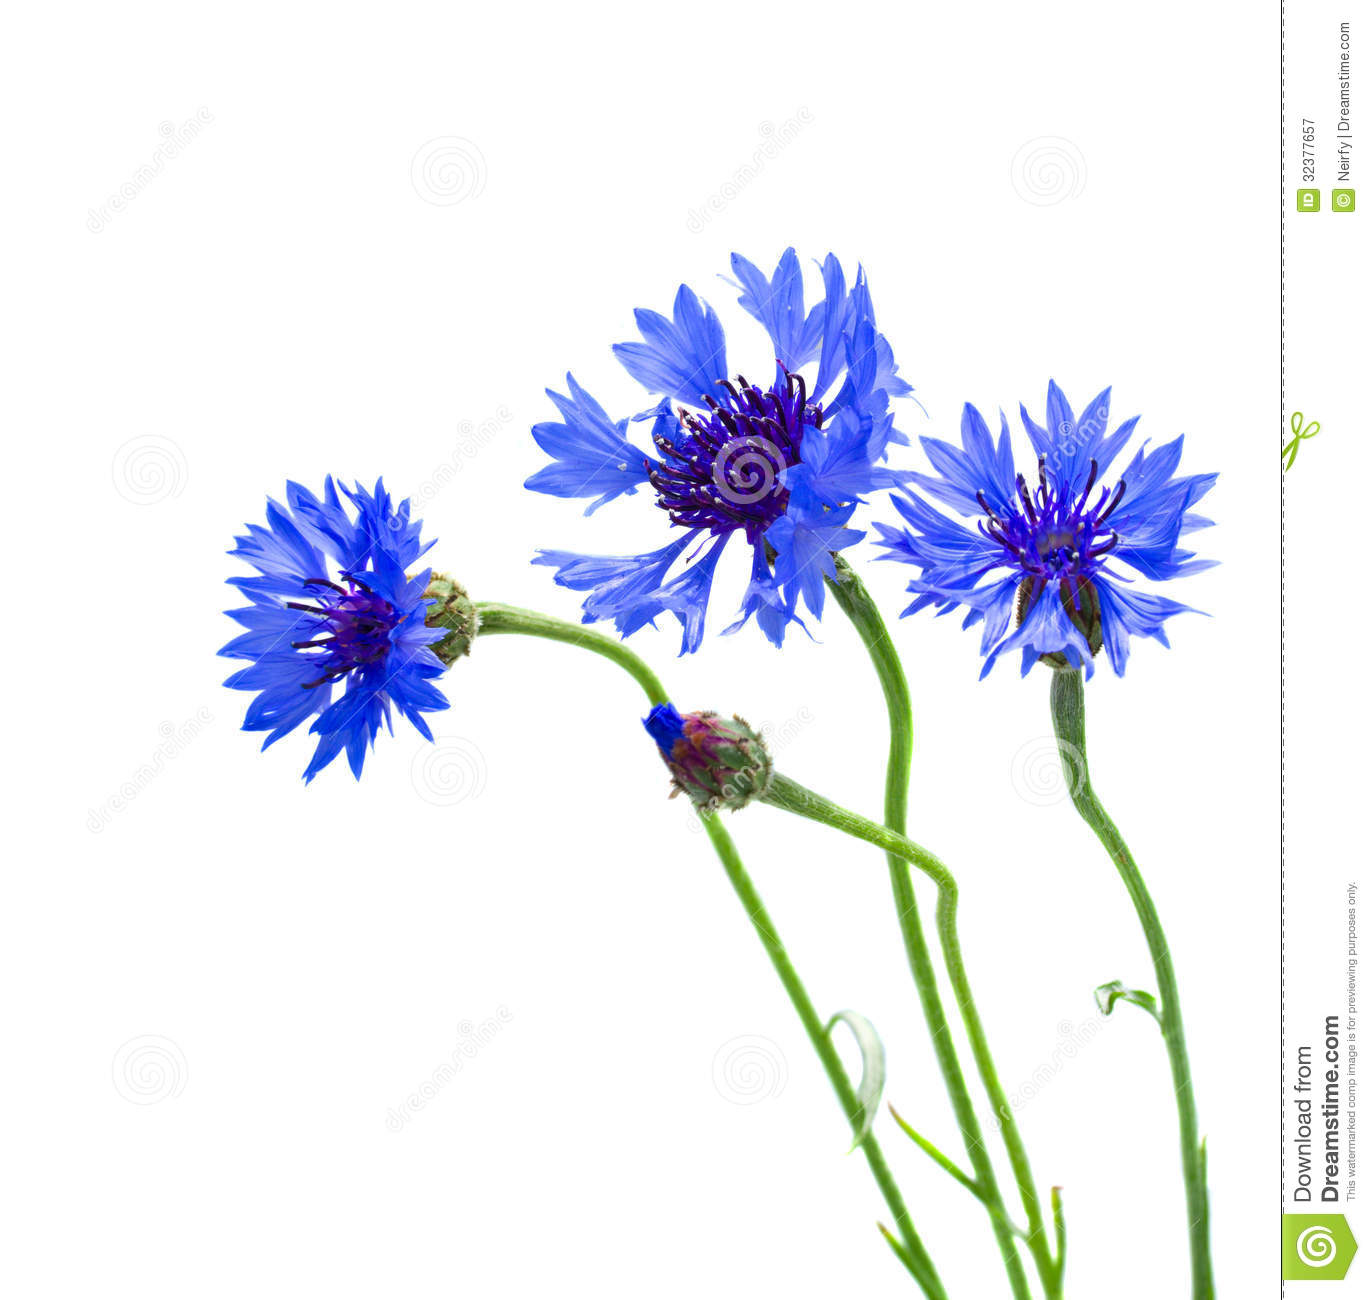 Blue Corn Flowers Royalty Free Stock Photography.